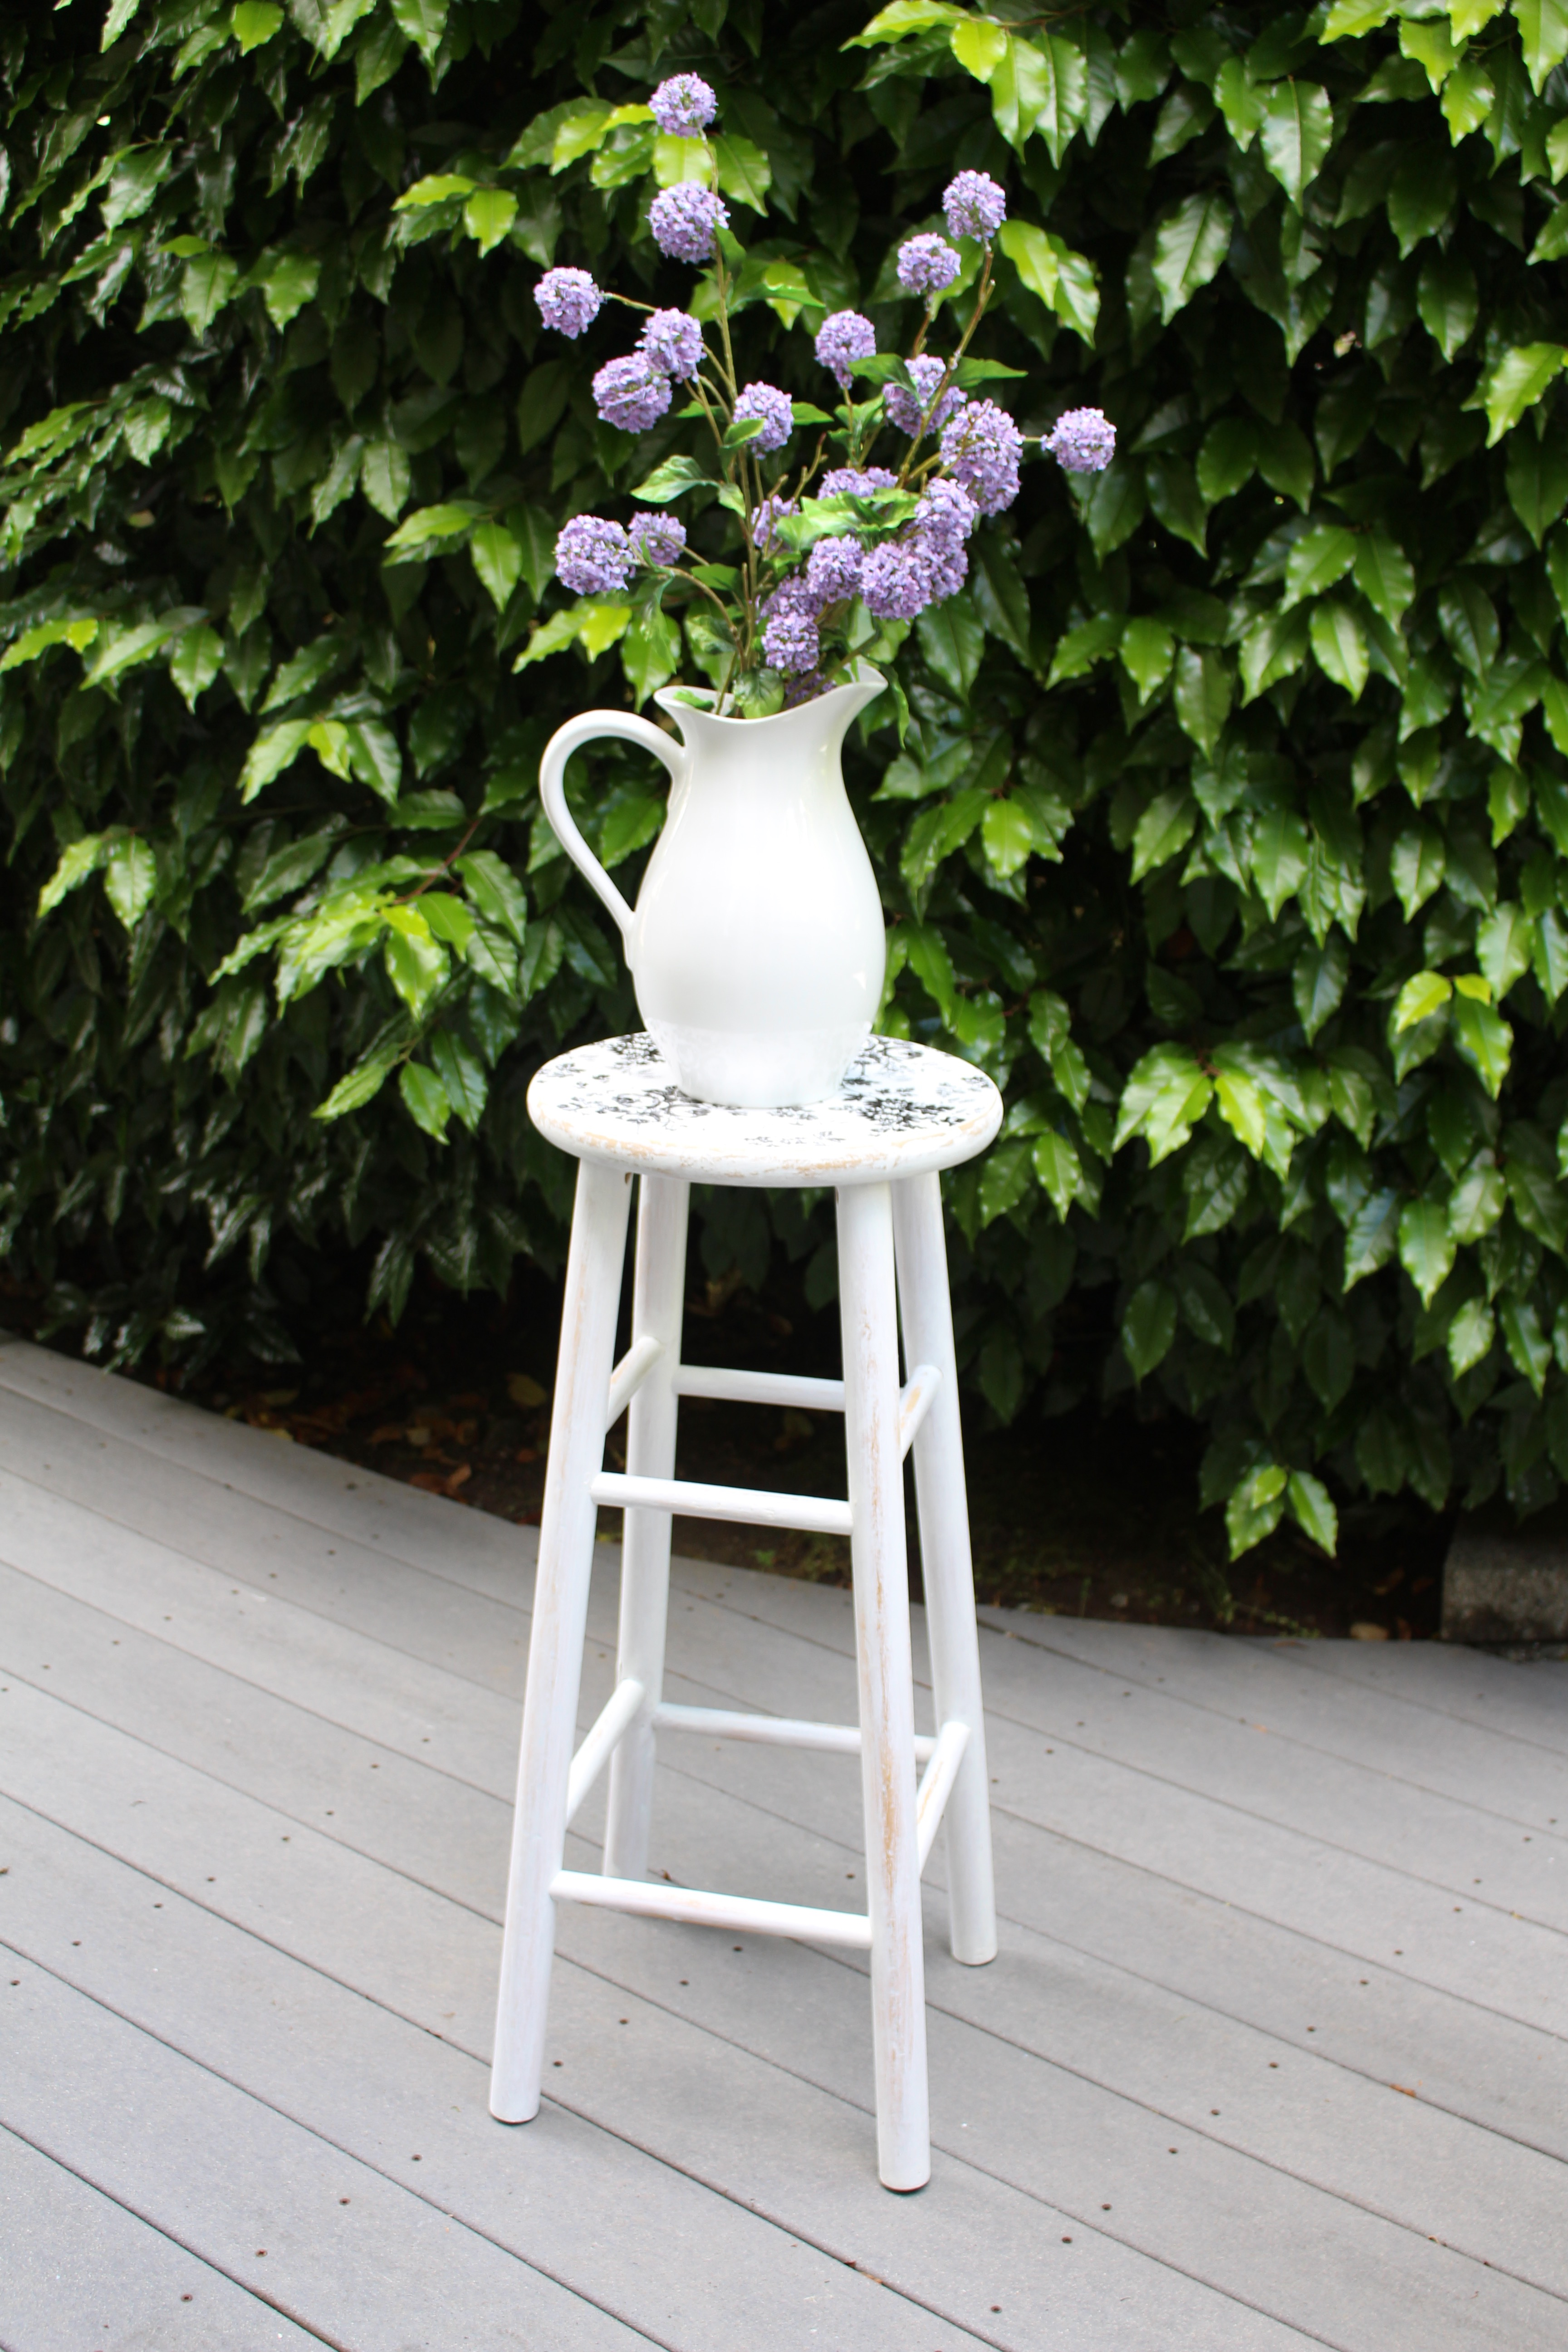 Farmhouse-Stool-with-Flowers